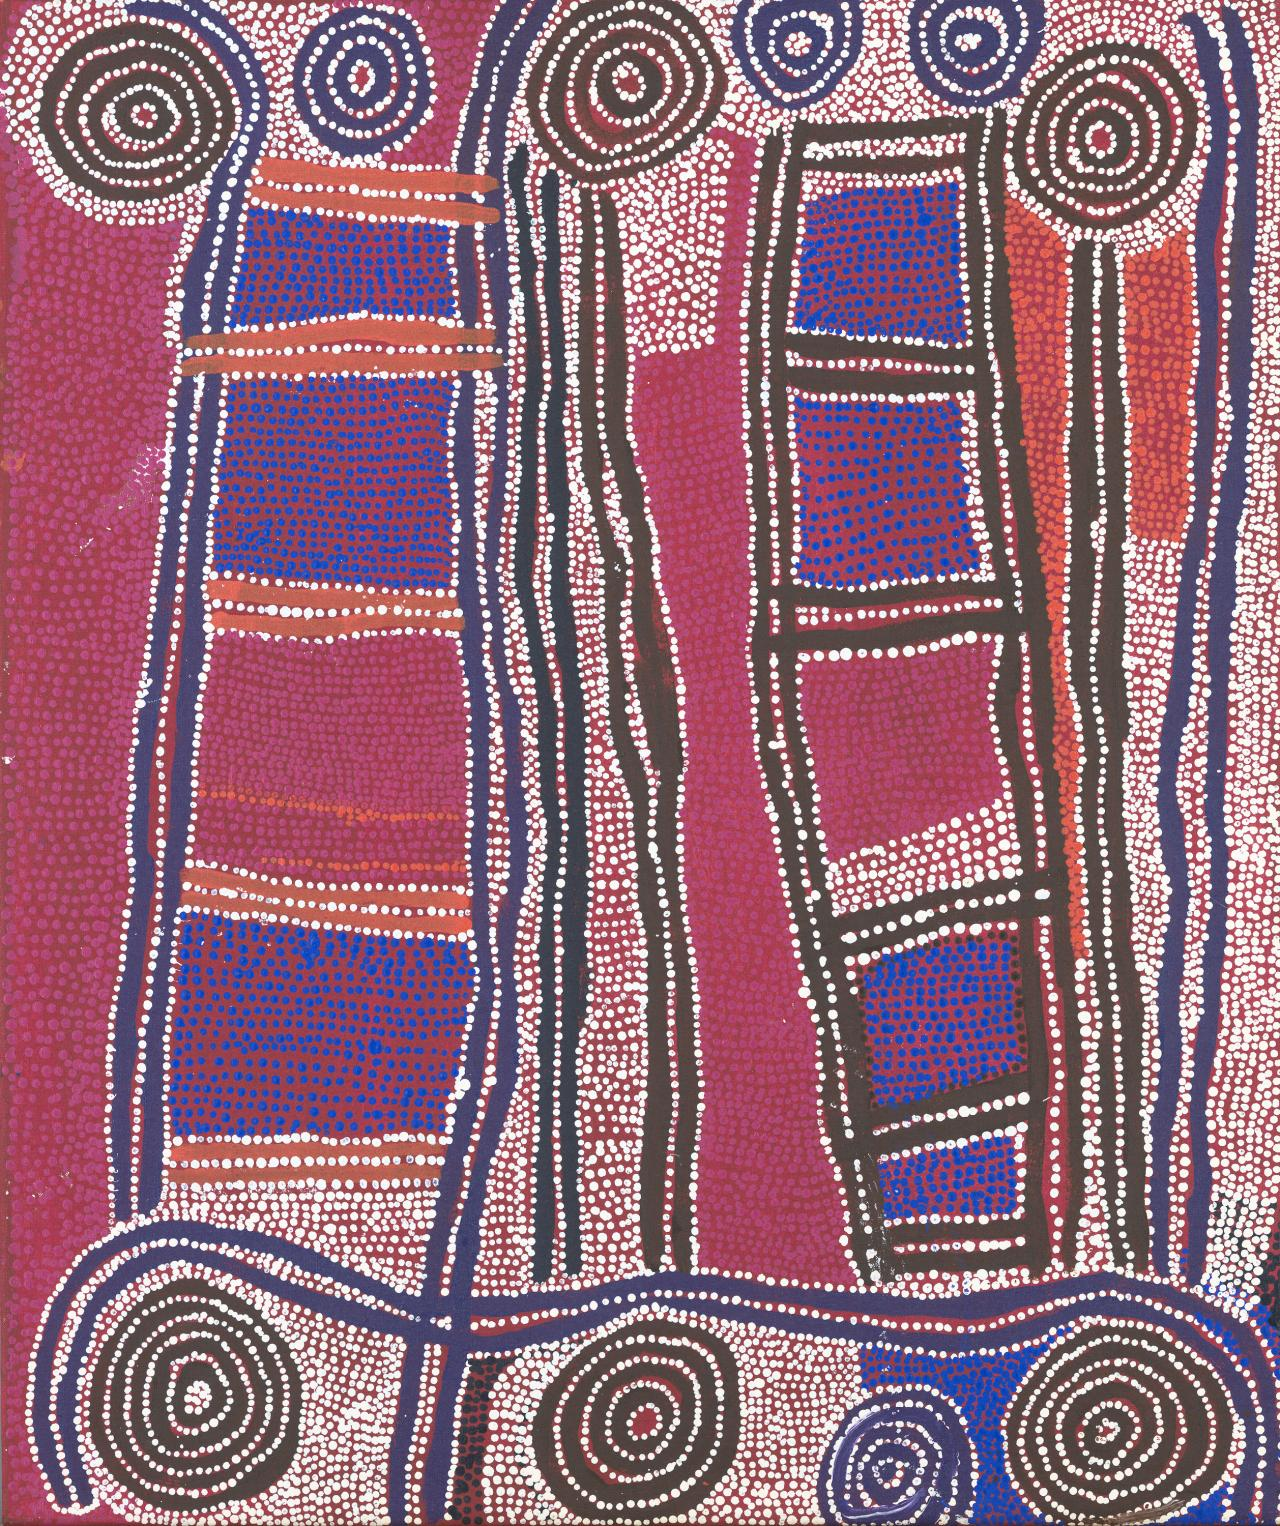 Wati Jarra Jukurrpa (Two men Dreaming)